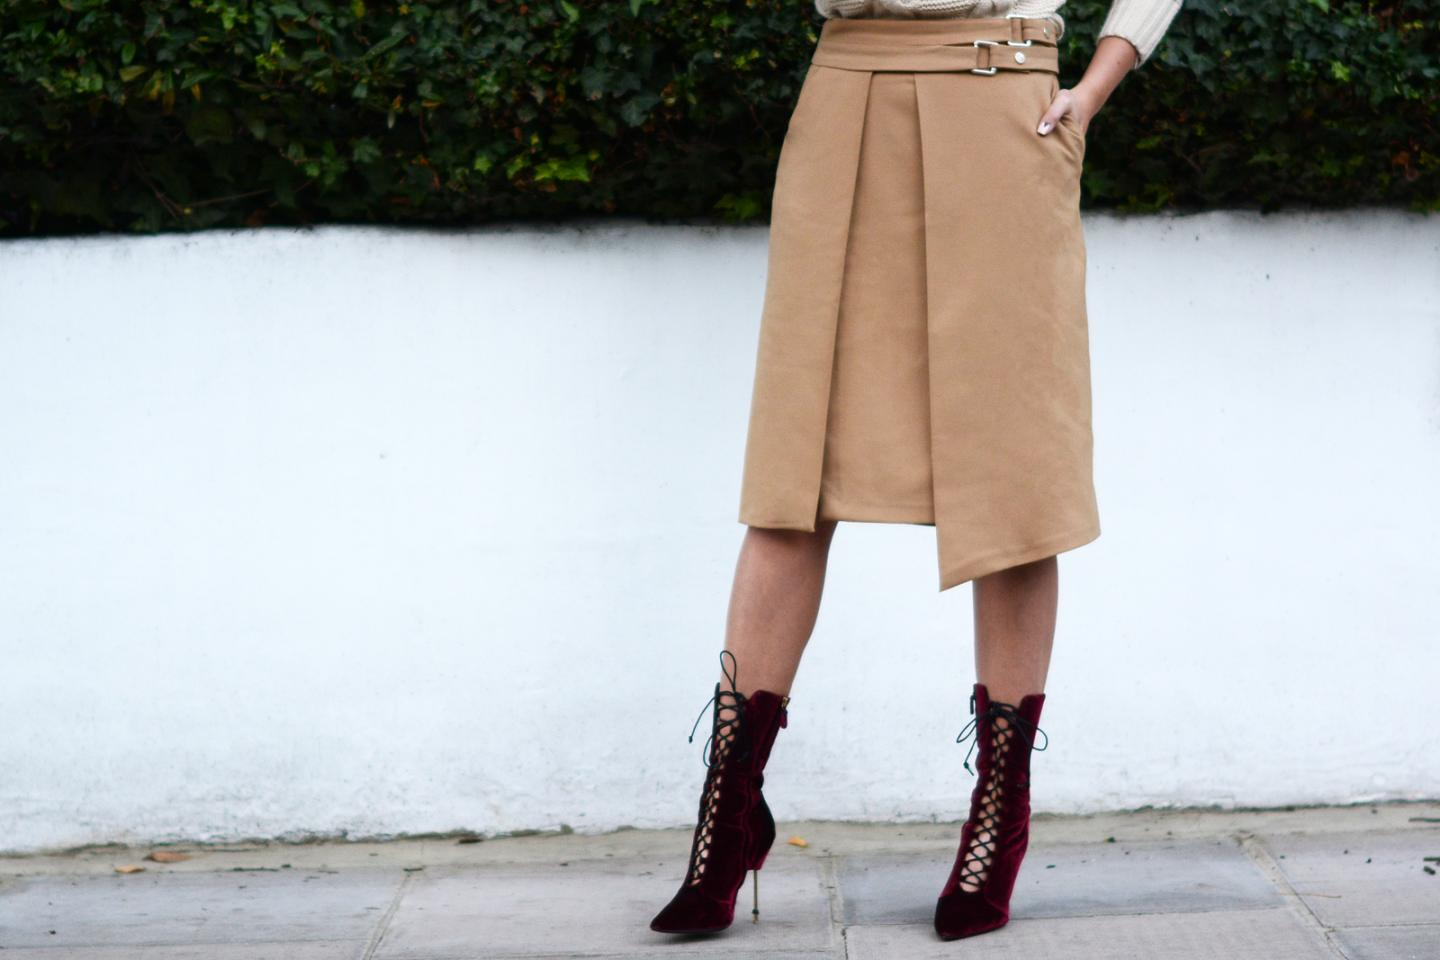 EJSTYLE - burgundy wine velvet lace up heeled boots by Kurt Geiger with metal heel, Zara camel wrap skirt with buckles